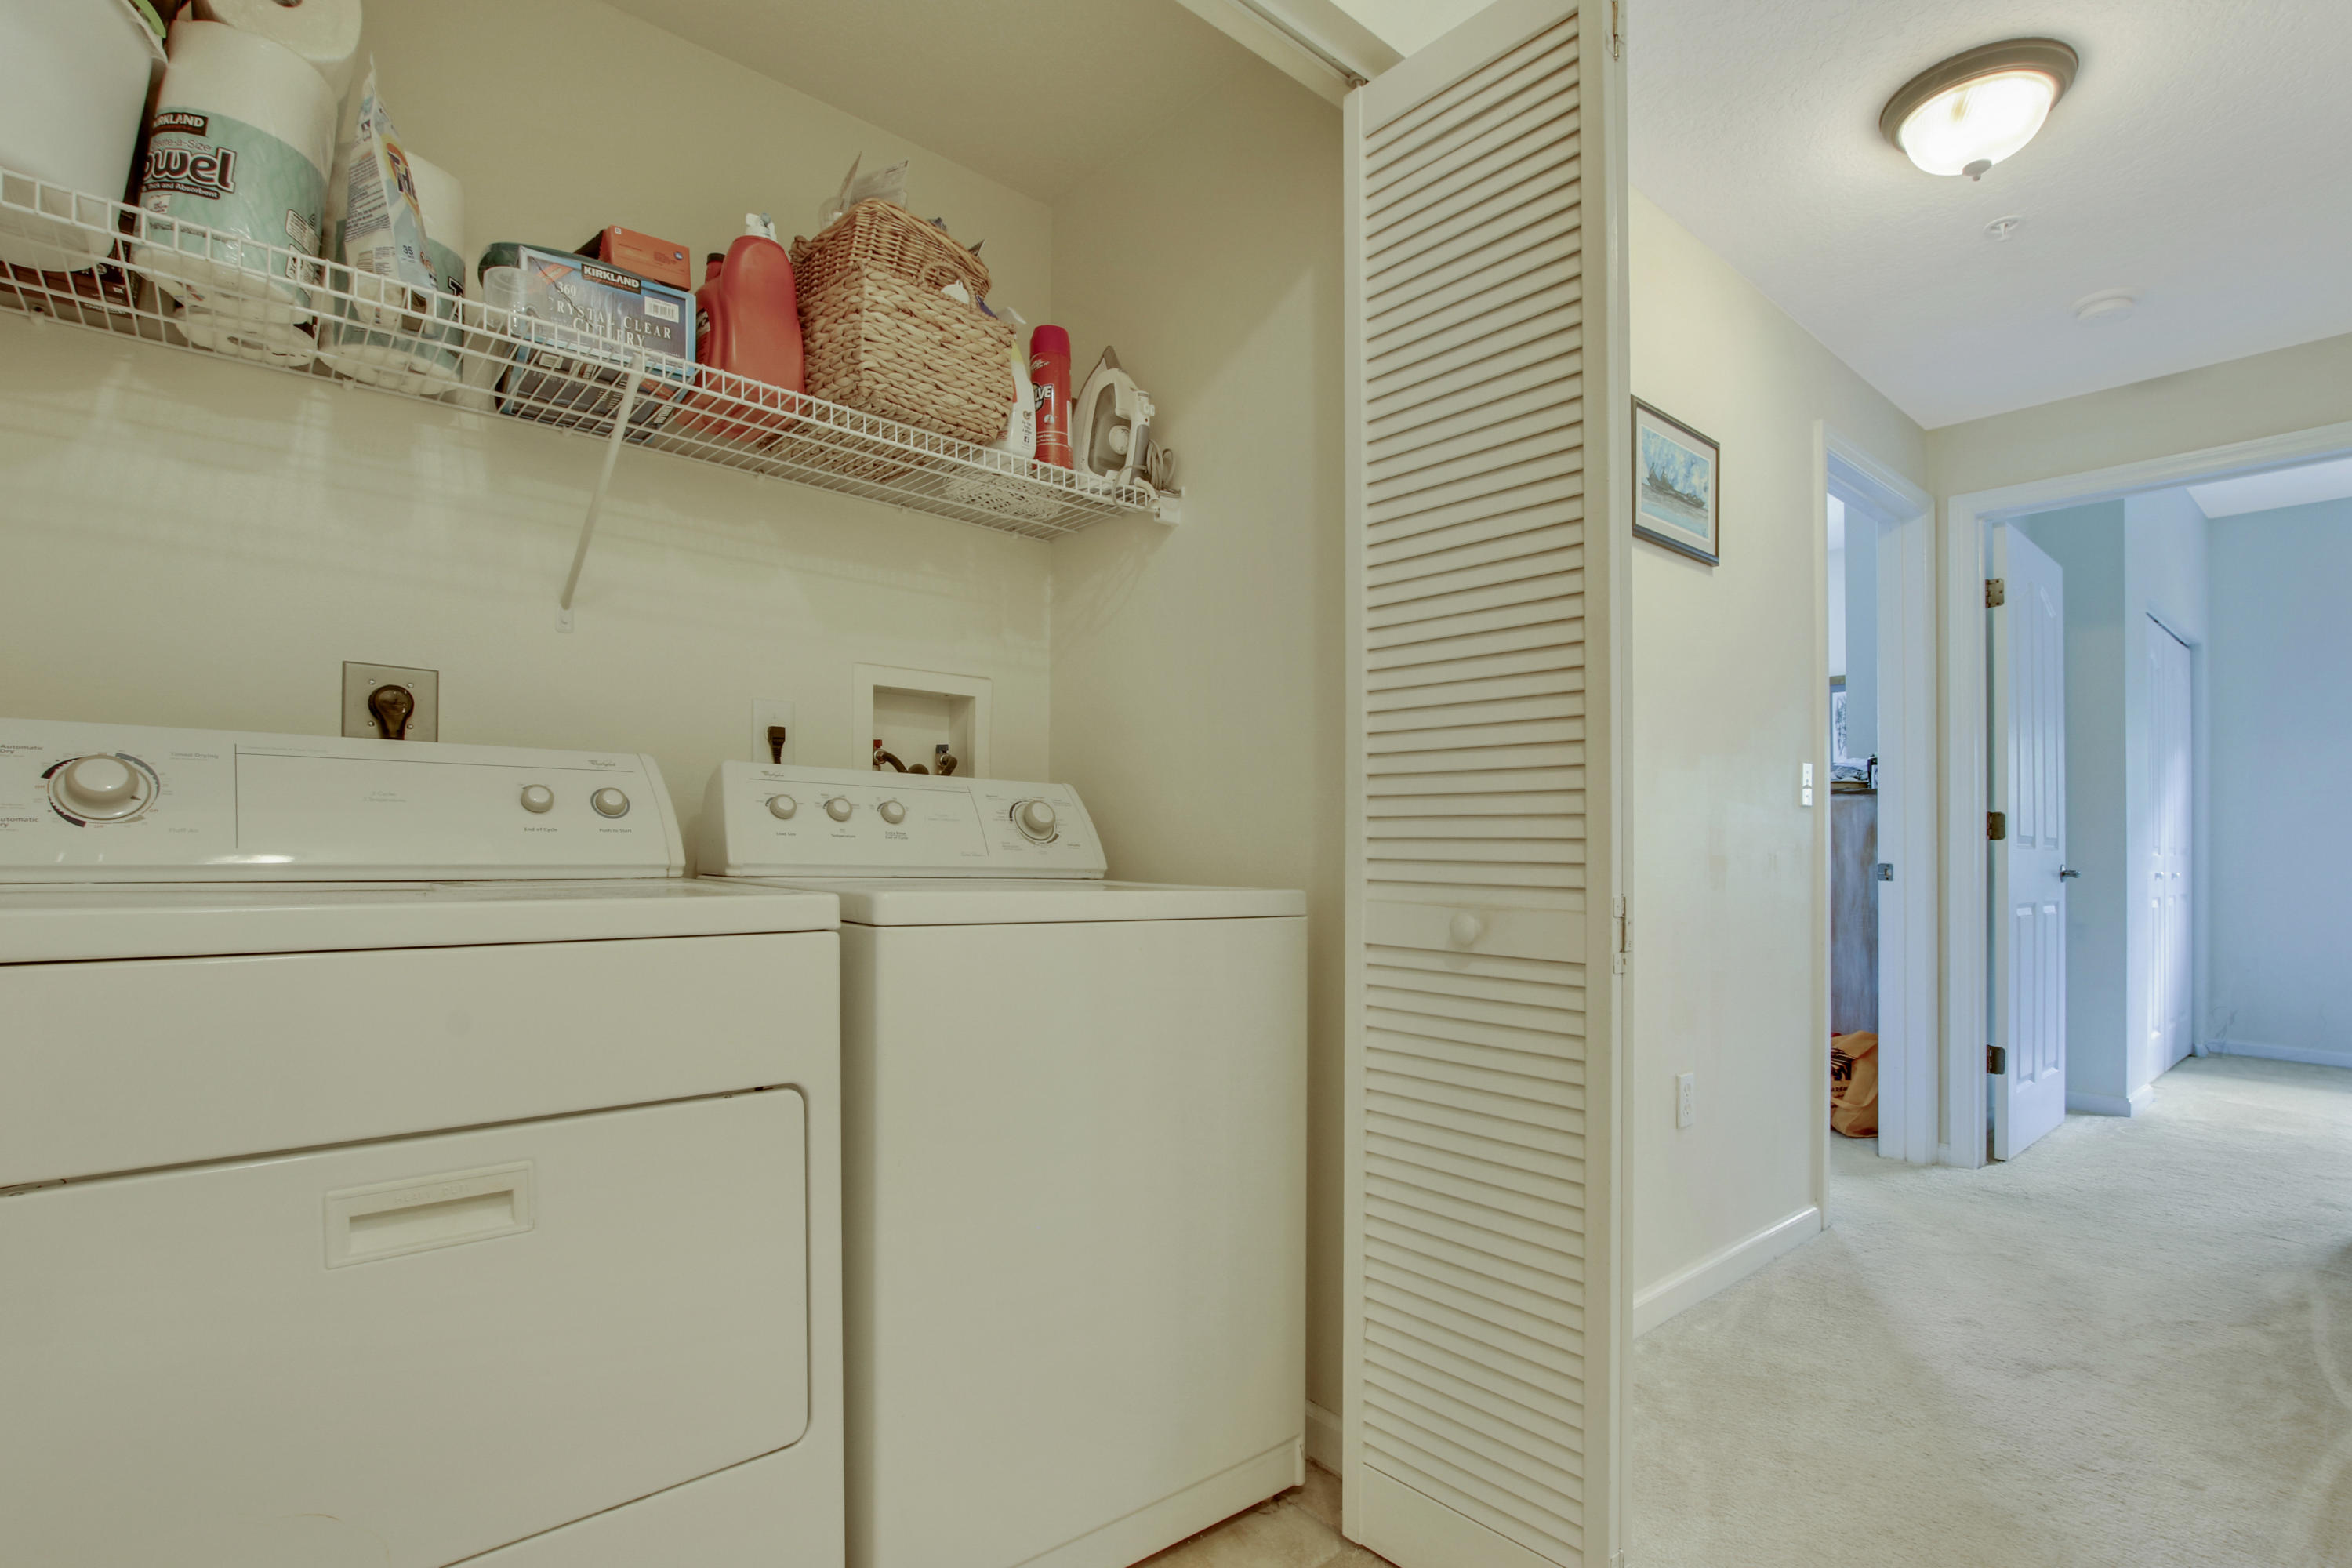 245 Murcia Drive 204  - Abacoa Homes - photo 9